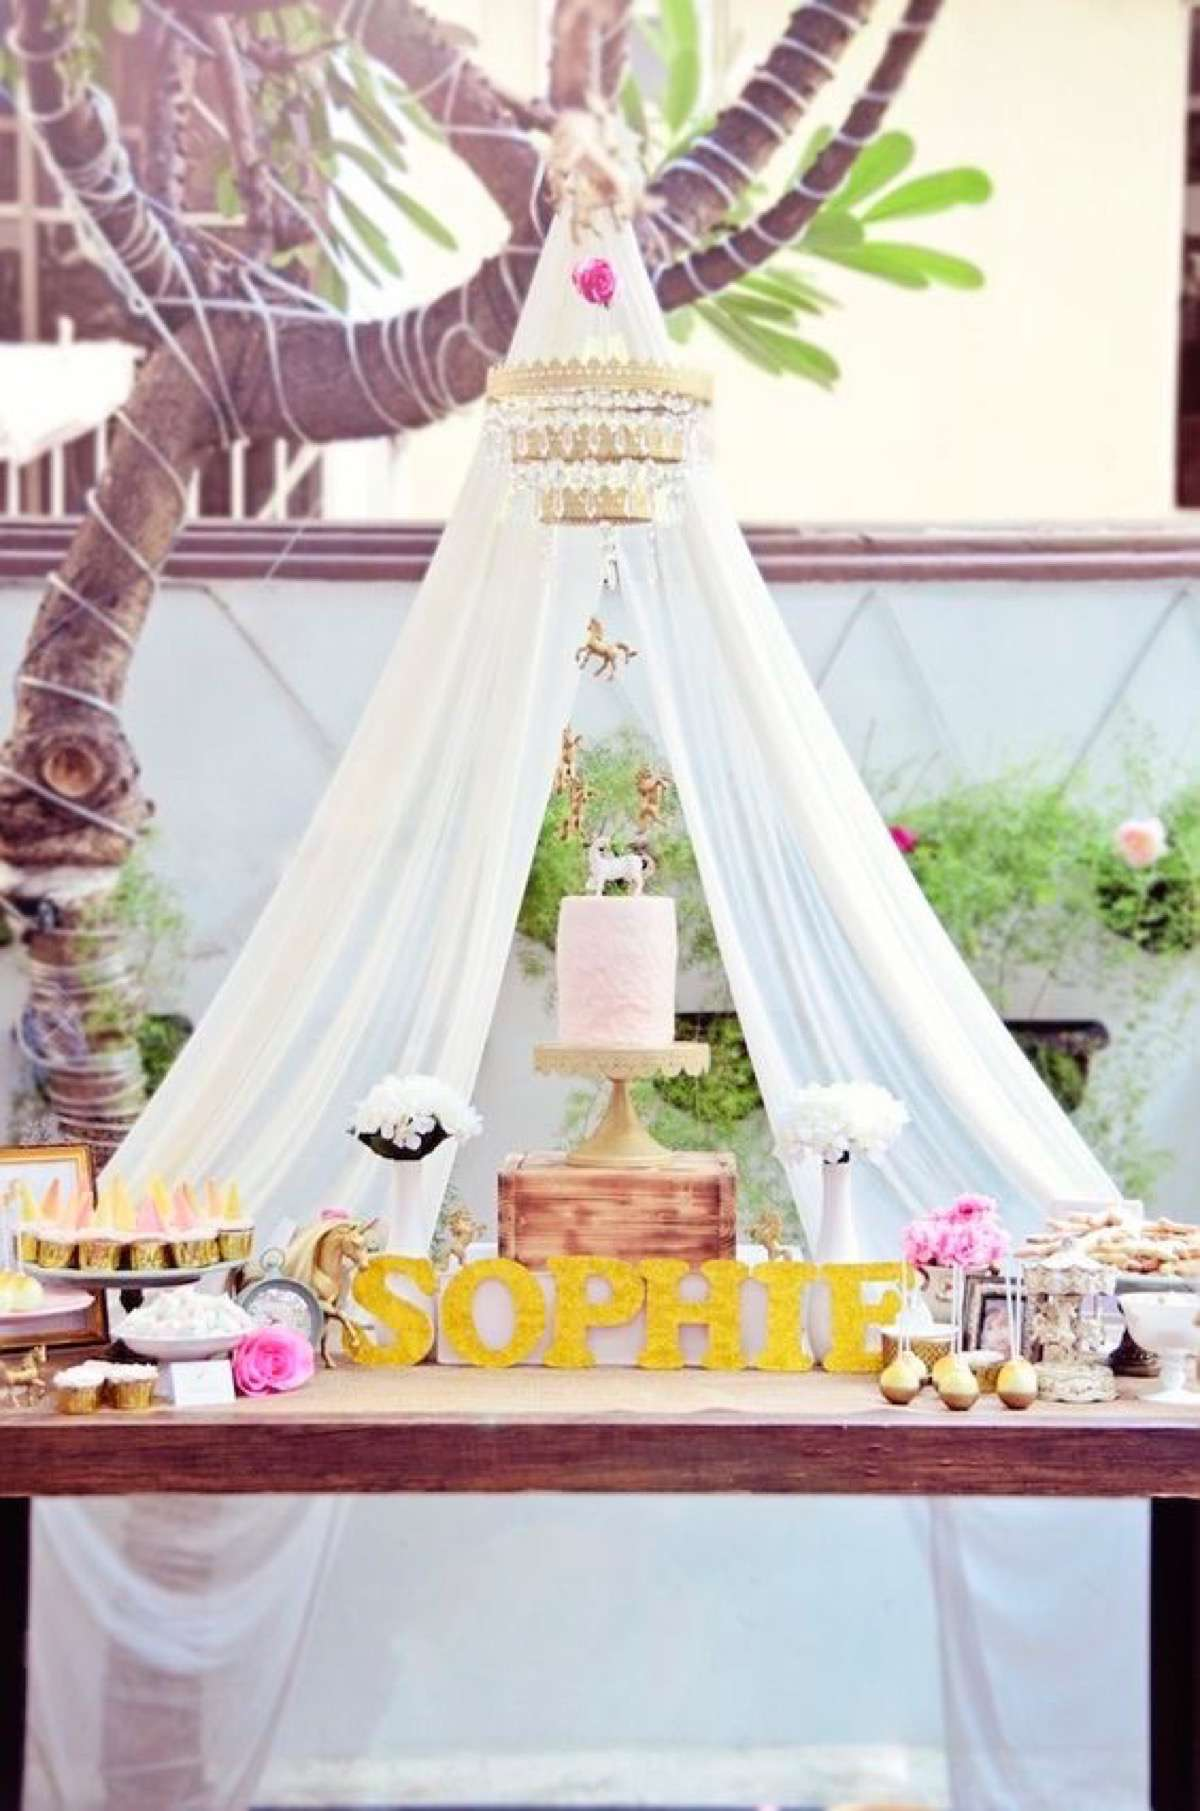 5 mesas decoradas para cumplea os y fechas especiales - Paginas web de decoracion ...